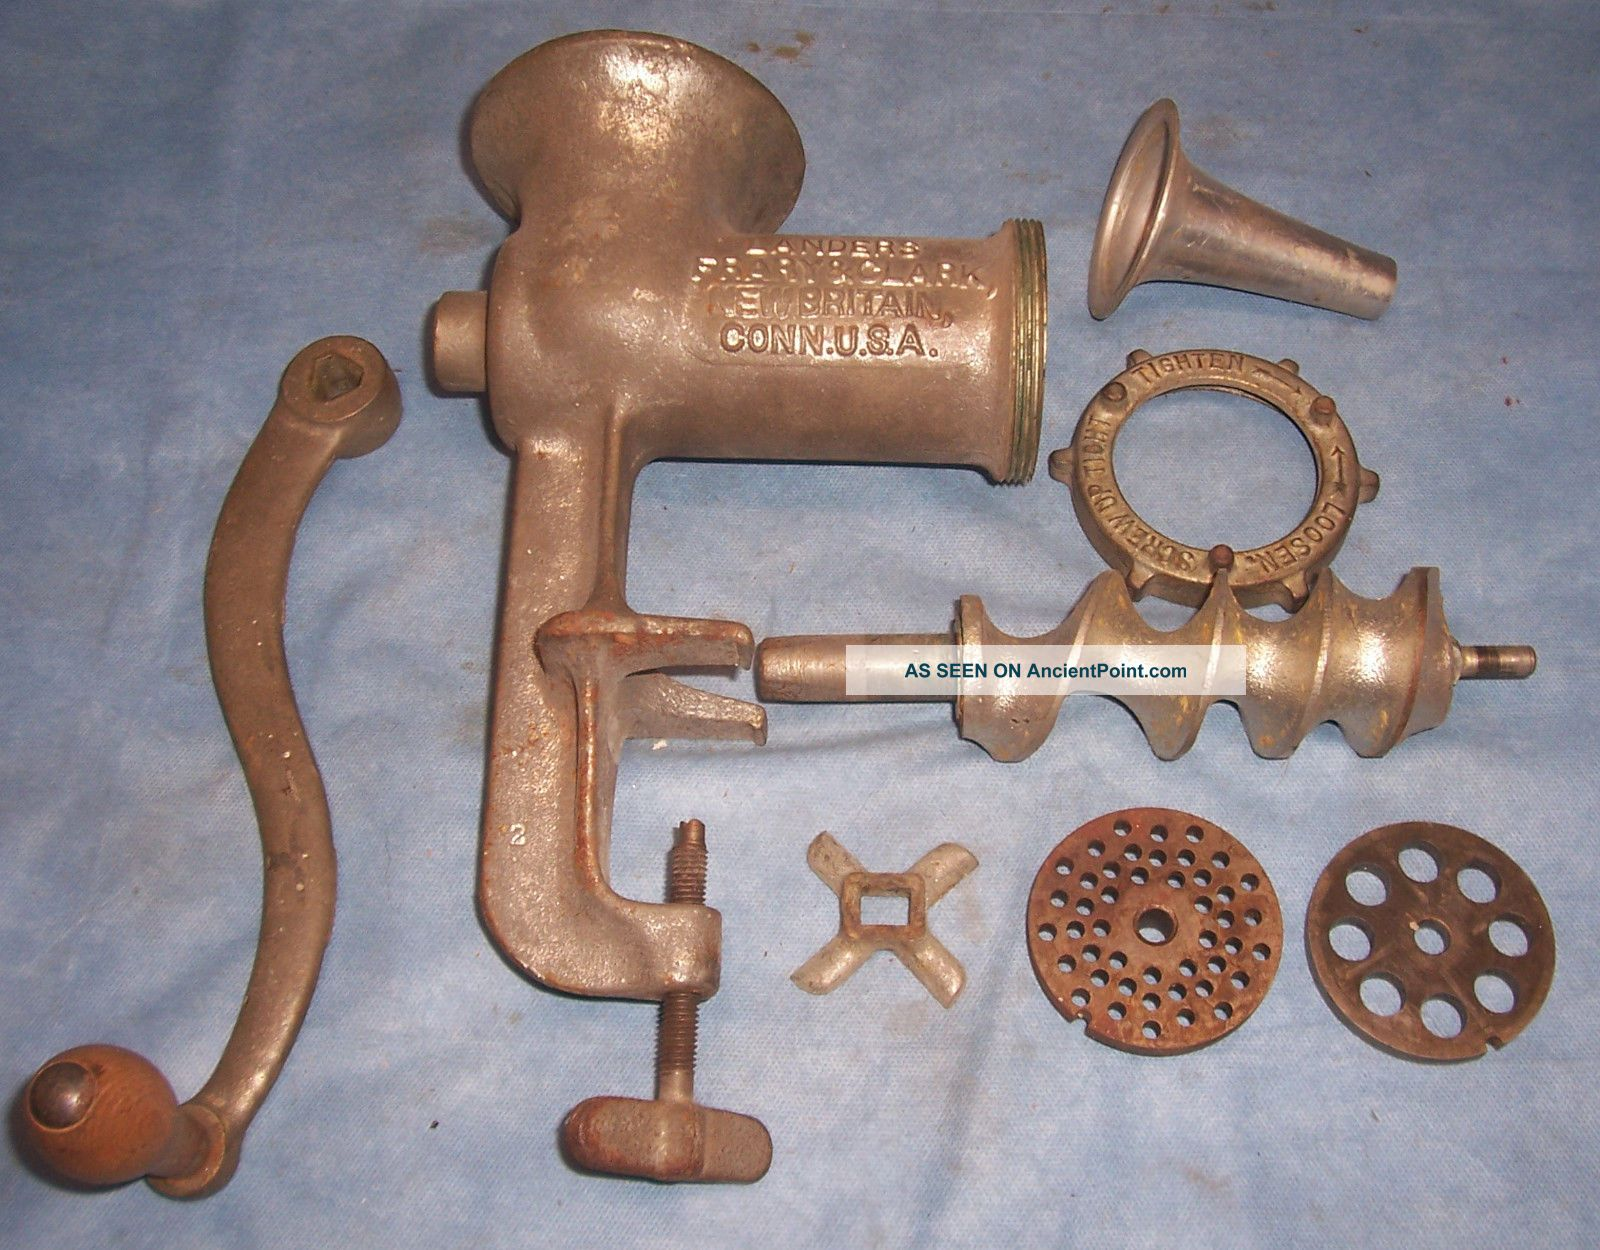 Landers Frary&clark Lf&c 333 Cast Iron Universal Food Chopper Grinder Processor Meat Grinders photo